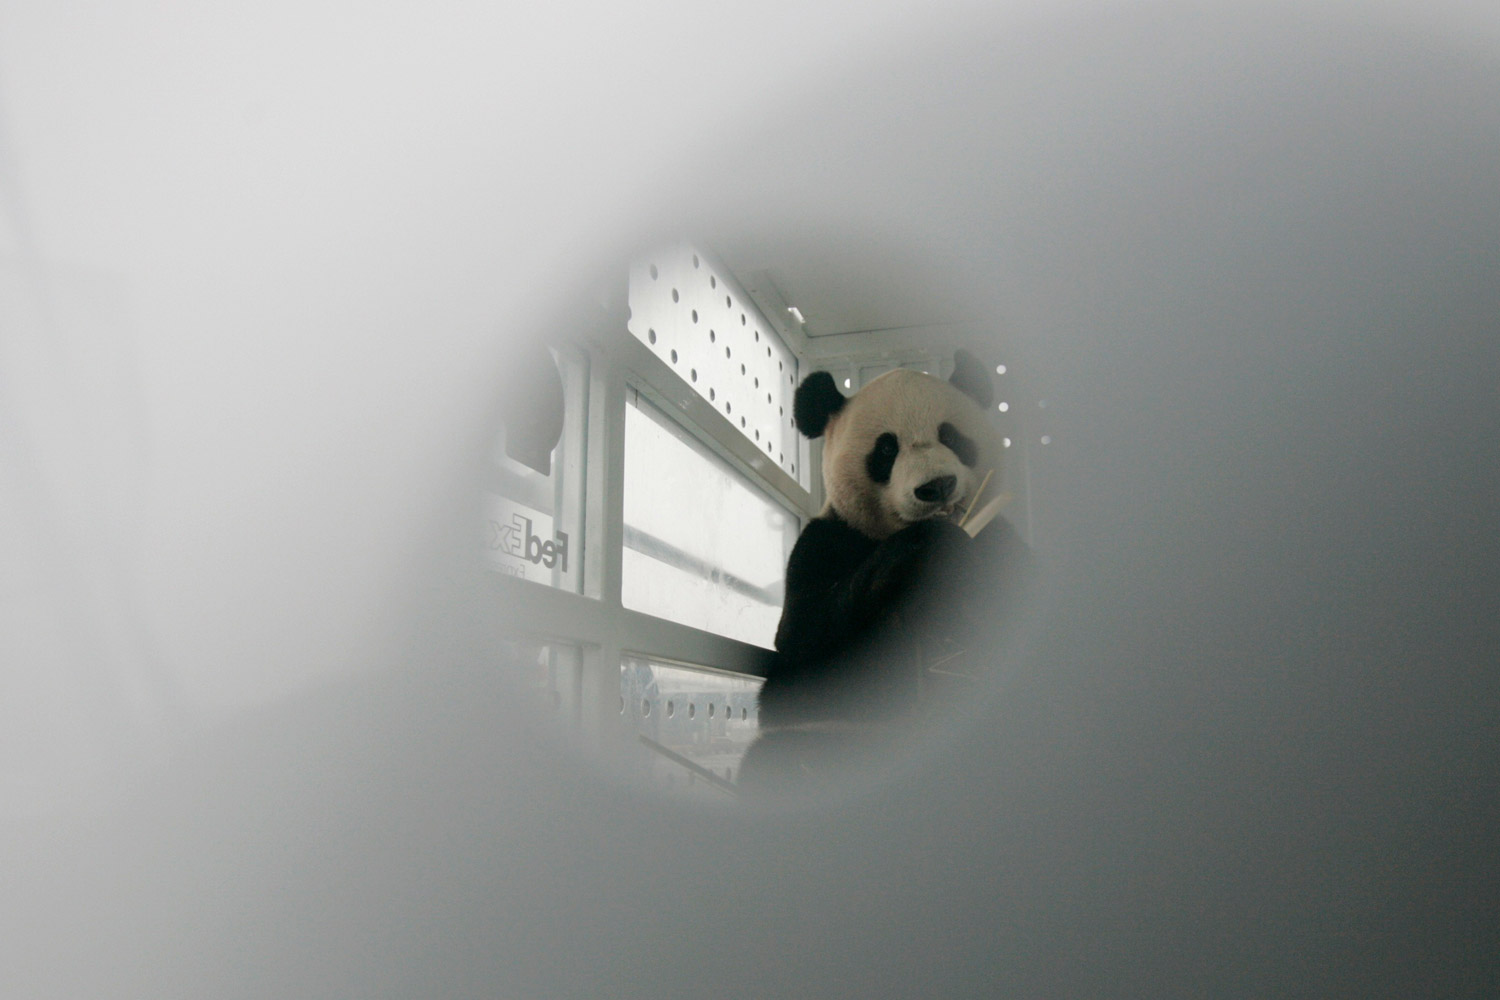 December 4, 2011. Giant panda Yang Guang is seen eating bamboo branches through a whole of a FedEx container at Chengdu Shuangliu International Airport, Sichuan province.